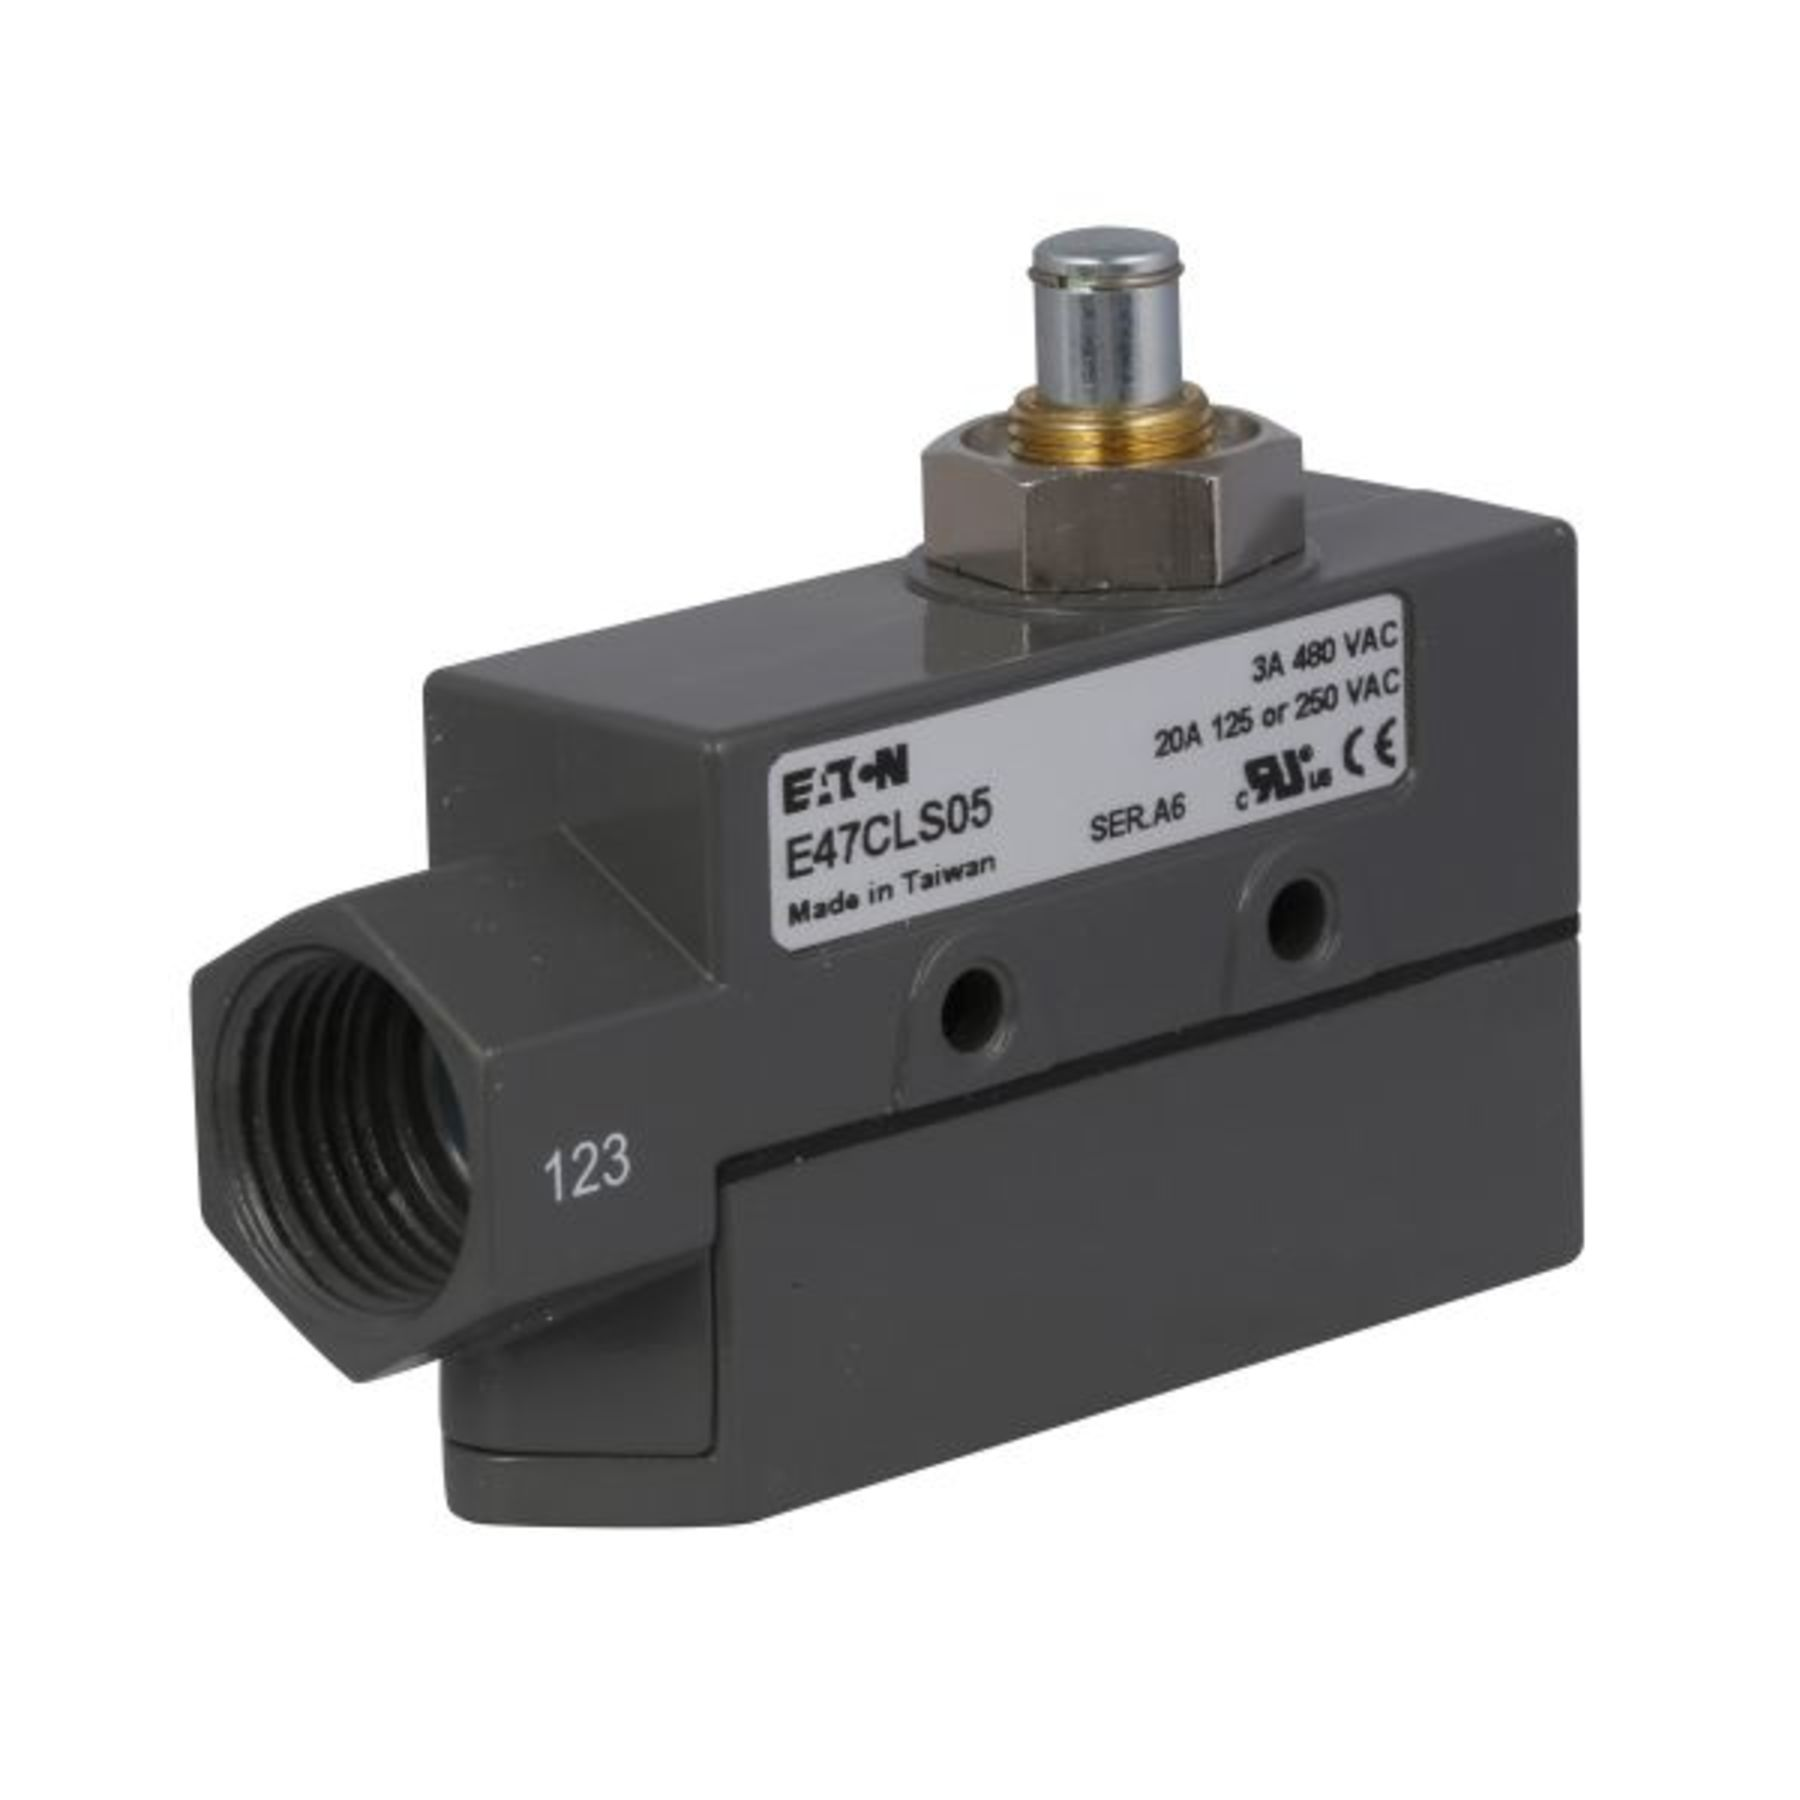 E47CLS05 Cutler-Hammer Limit Switch 20-AMP | Eaton Out of Stock ...